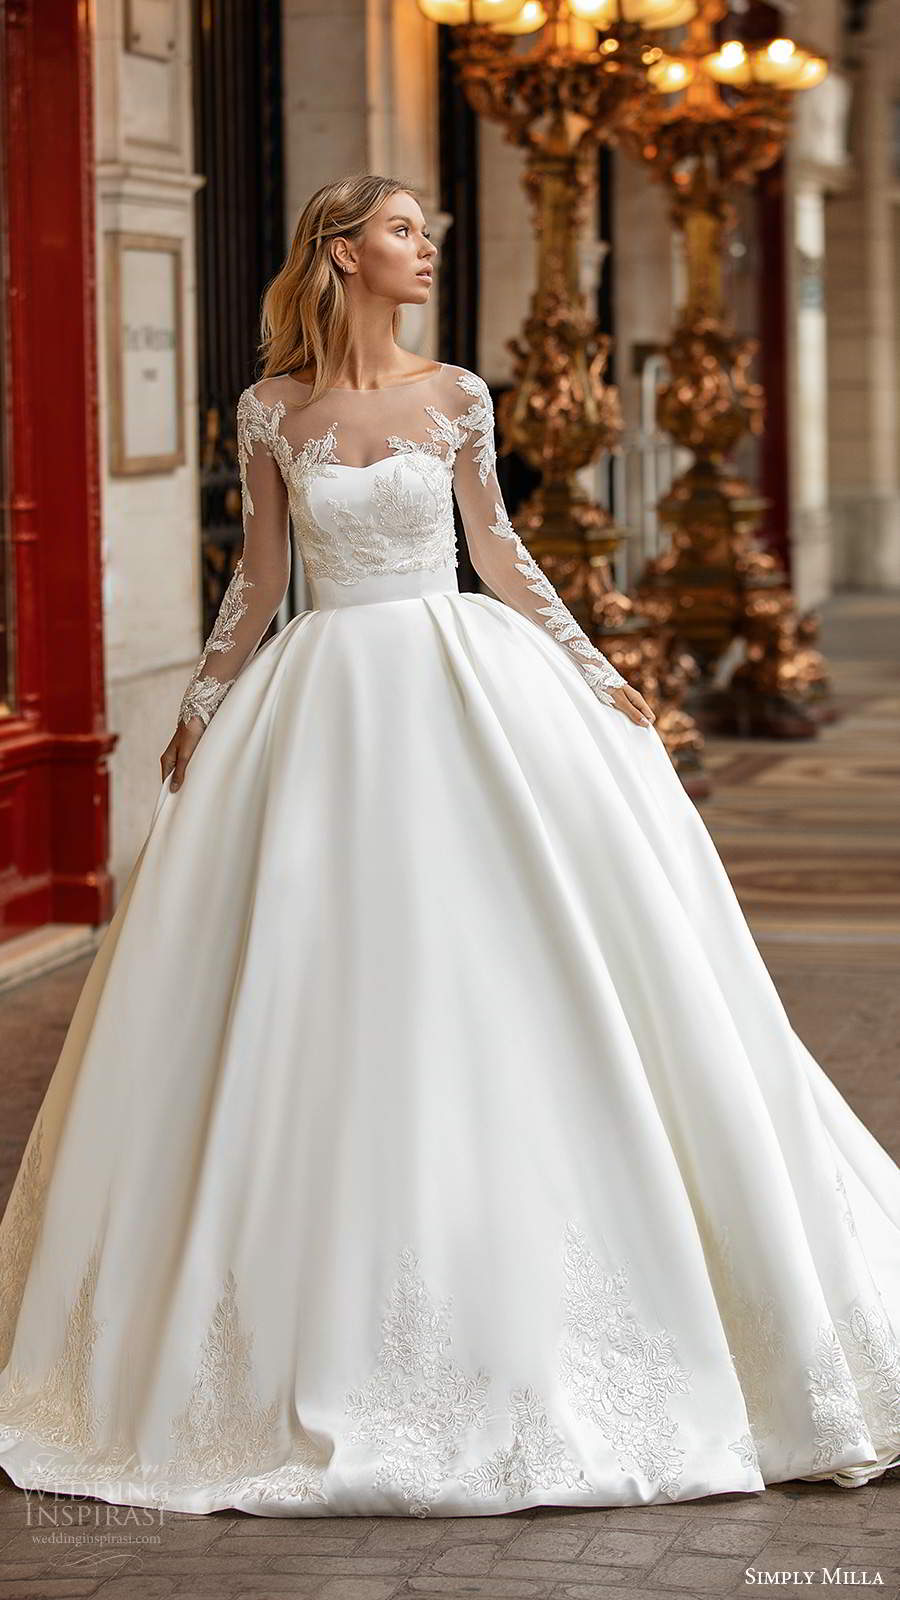 simply milla nova 2020 bridal illusion sleeves top strapless semi sweetheart clean minimal a line ball gown wedding dress chapel train (2) fv